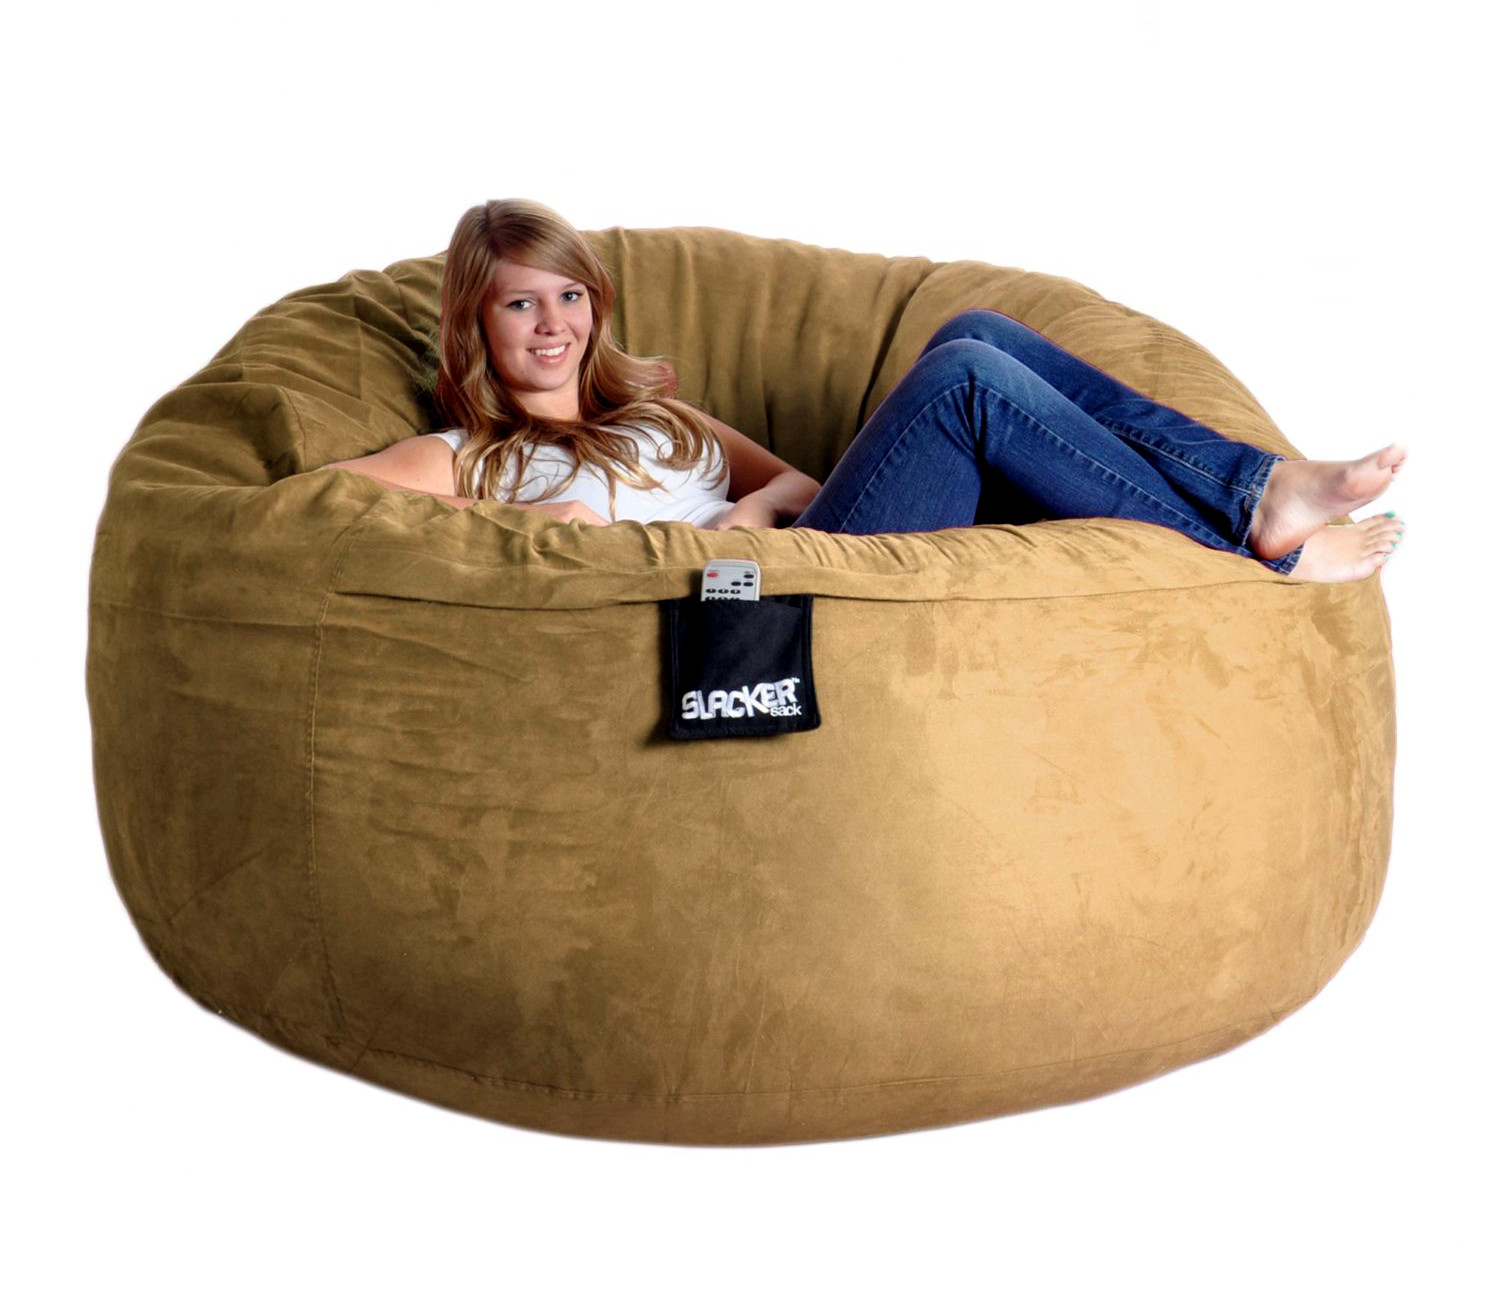 Giant Beanbag Stuff You Should Have